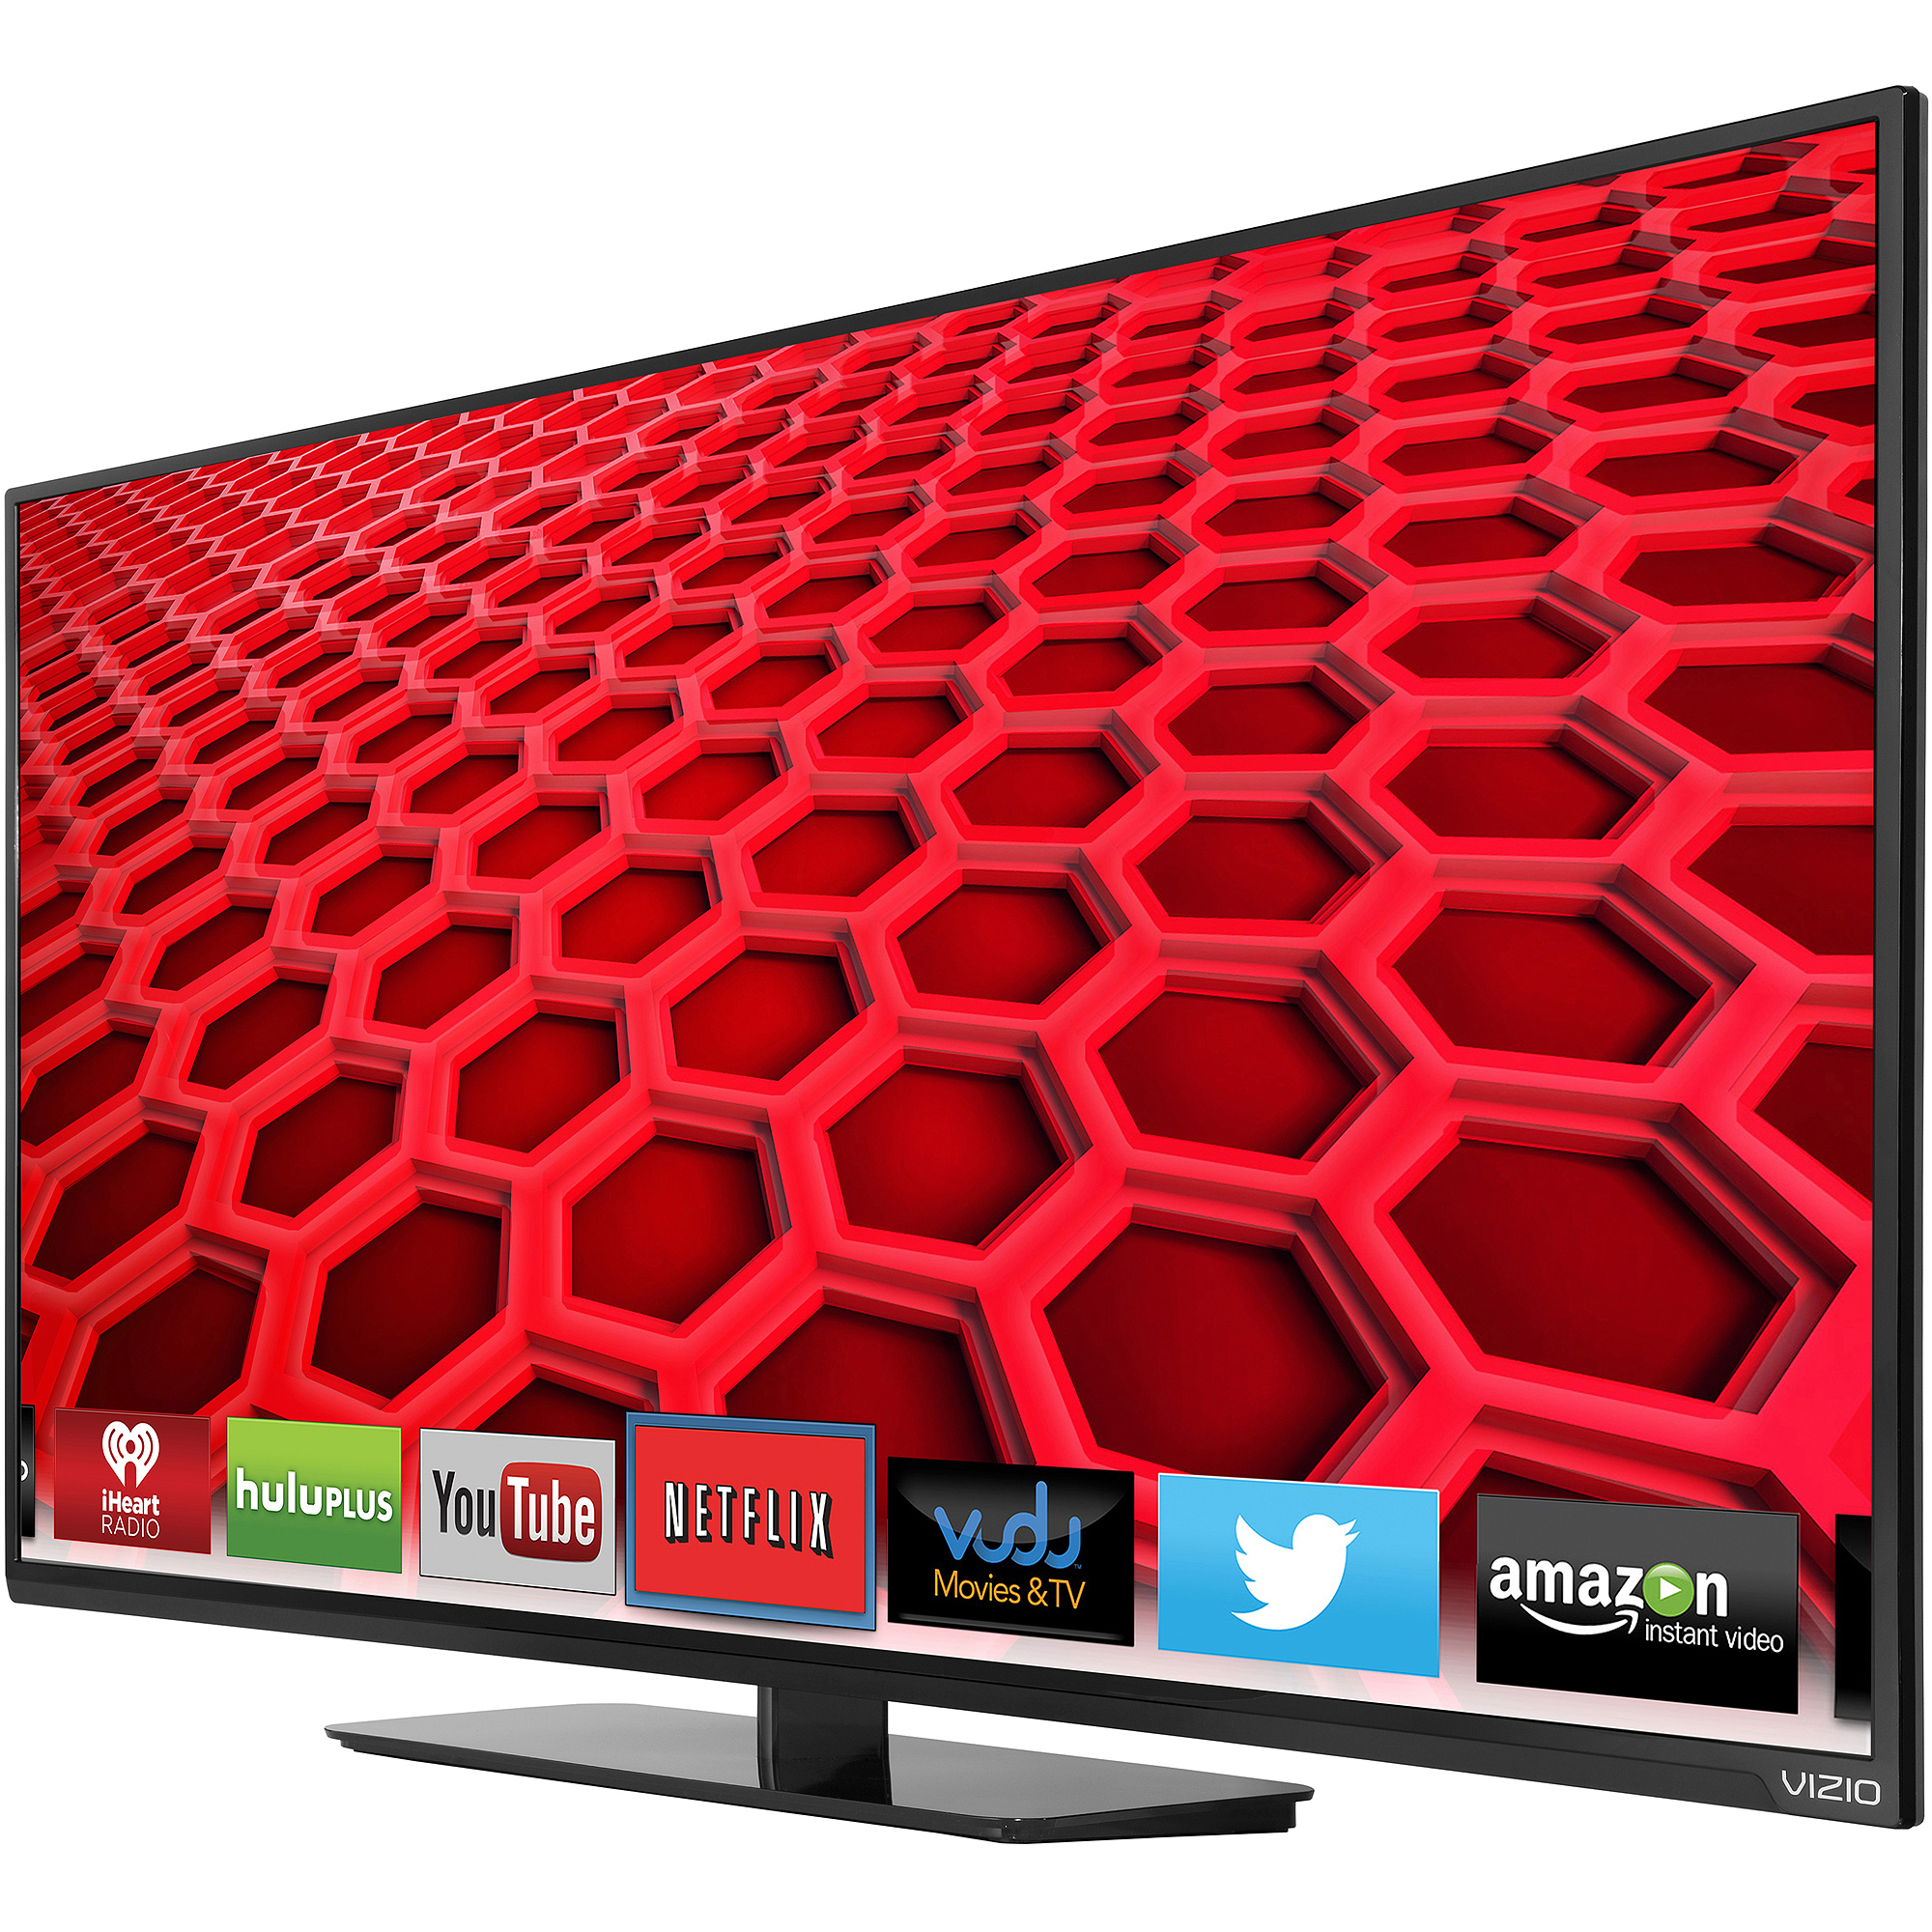 Can i connect my ipad to my vizio smart tv wirelessly